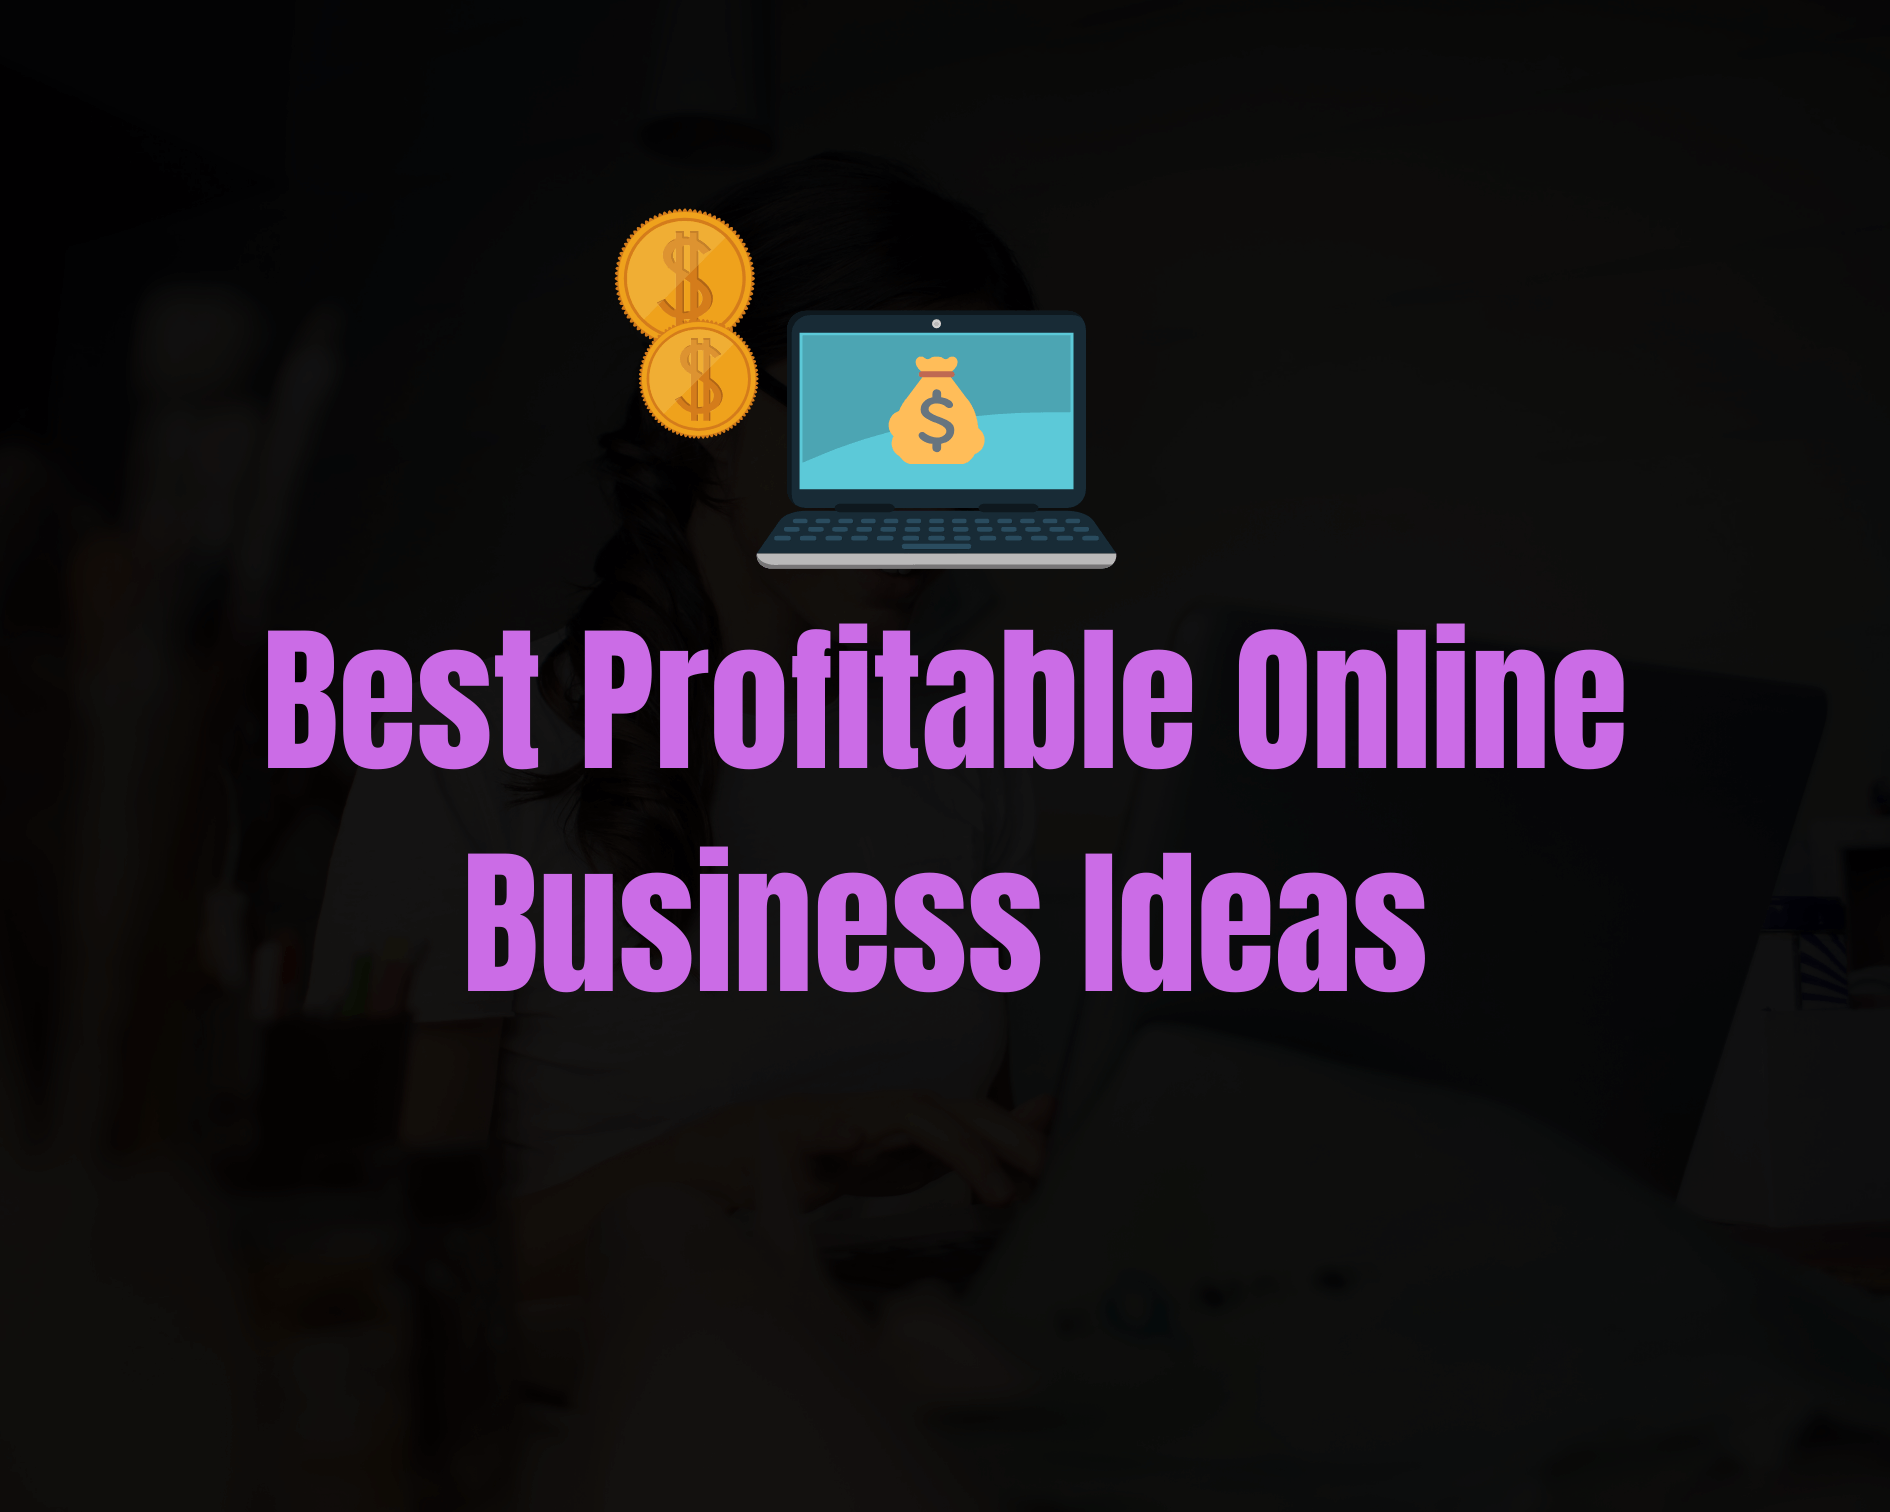 Top 8 Profitable Online Business Ideas that Anyone Can Start from Home